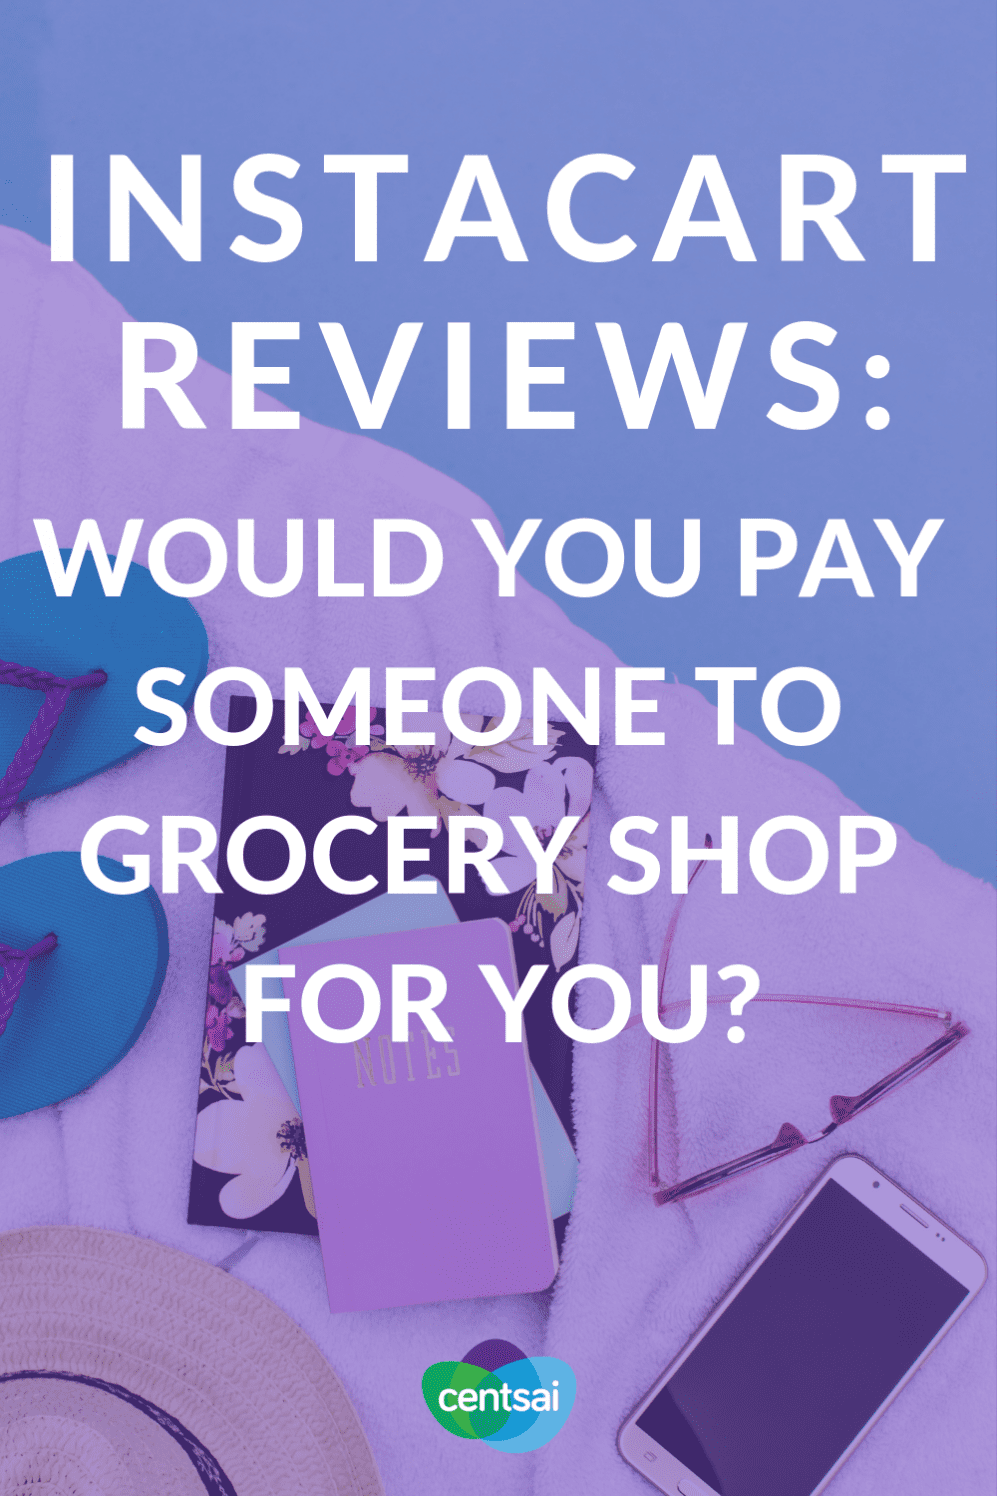 Instacart Reviews: Would You Pay Someone to Grocery Shop for You? Who likes grocery shopping, right? Some apps help you hire somebody else to do it. Read our Instacart reviews to see if it's worth your money. #instacart #groceryshop #review